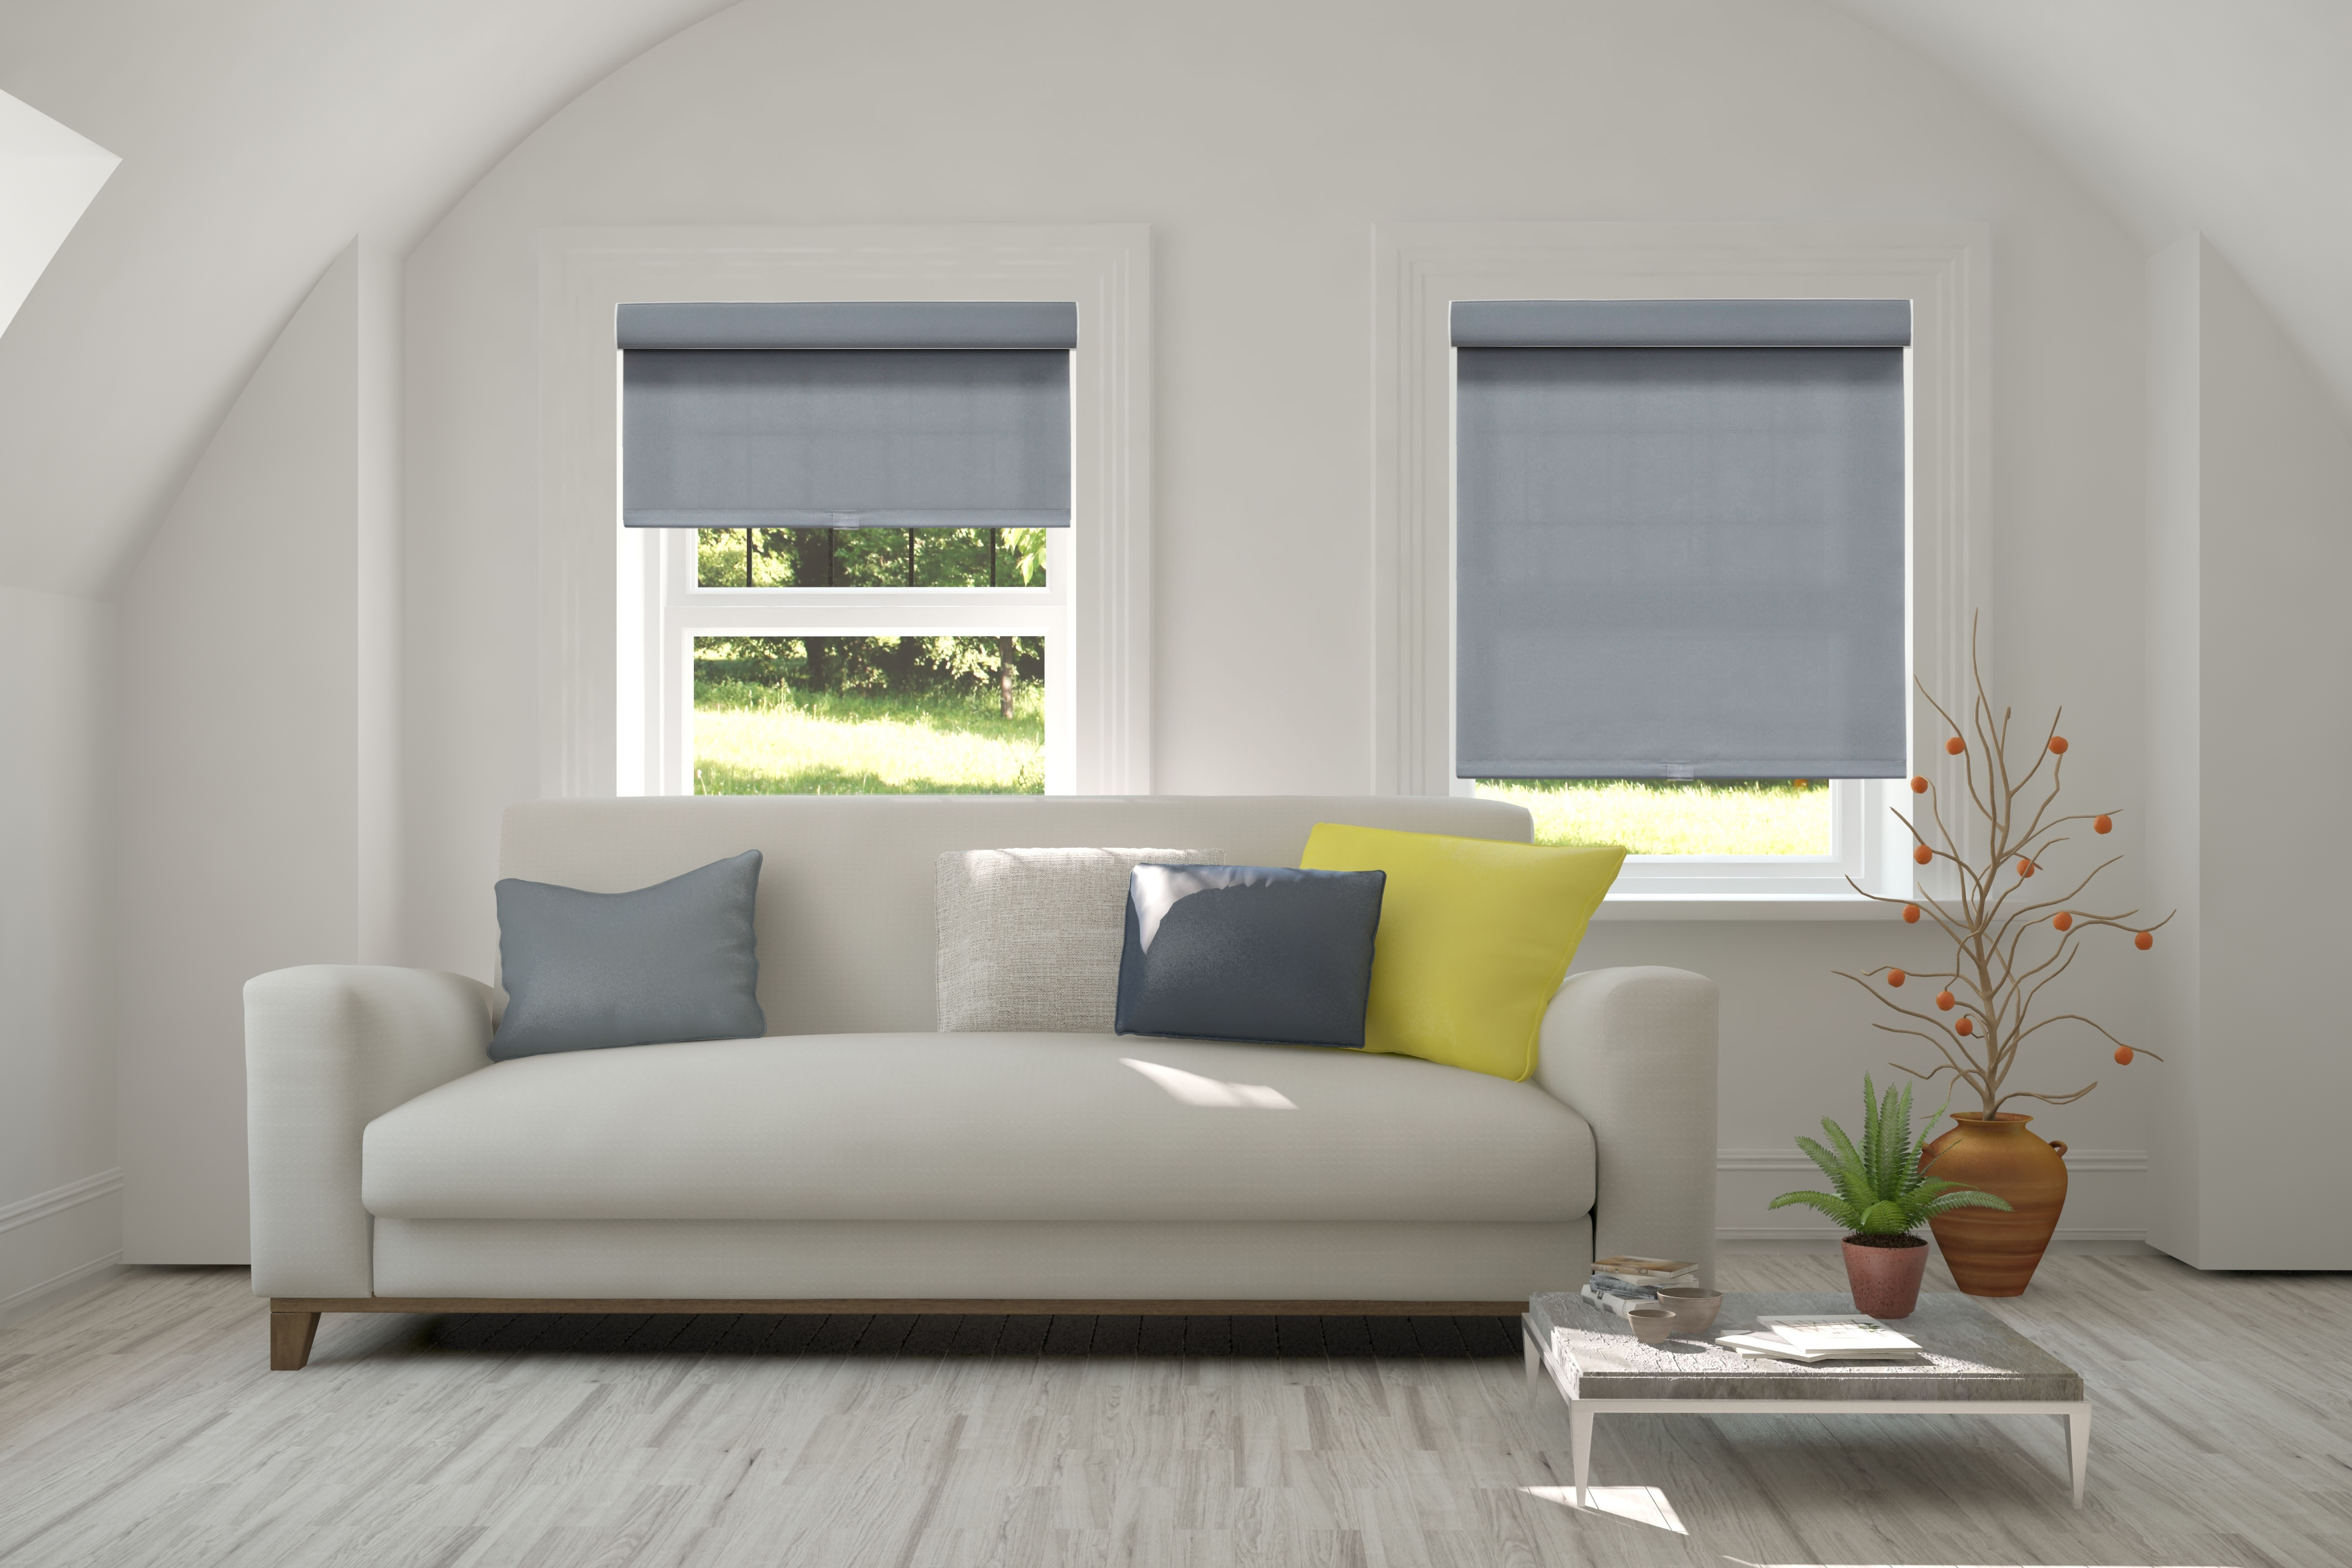 Outside In How To Mount Roller Shades To Achieve Different Looks Chic Blog Home Page